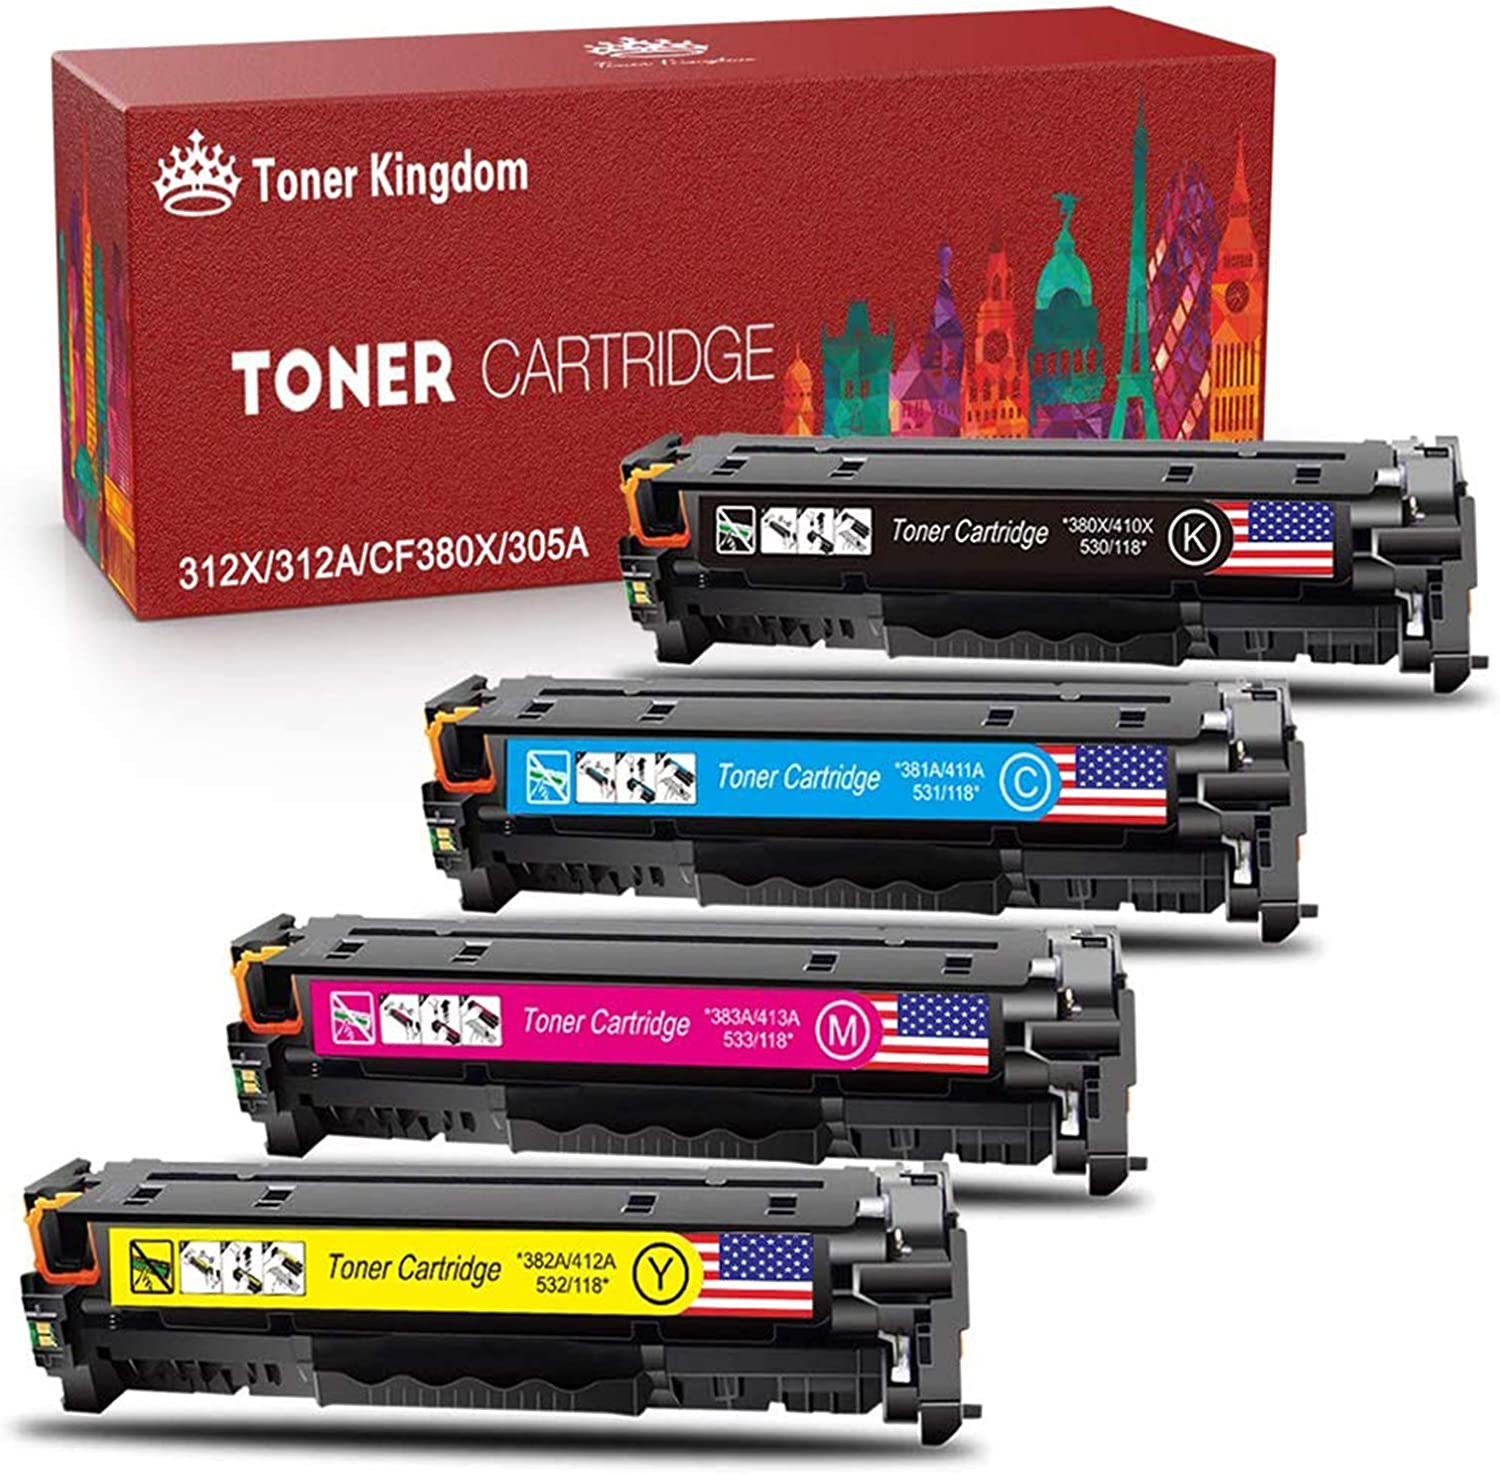 10x Eurotone Remanufactured Toner for HP Laserjet M 3027 3035 X xs MFP Replaces Q7551A 51A